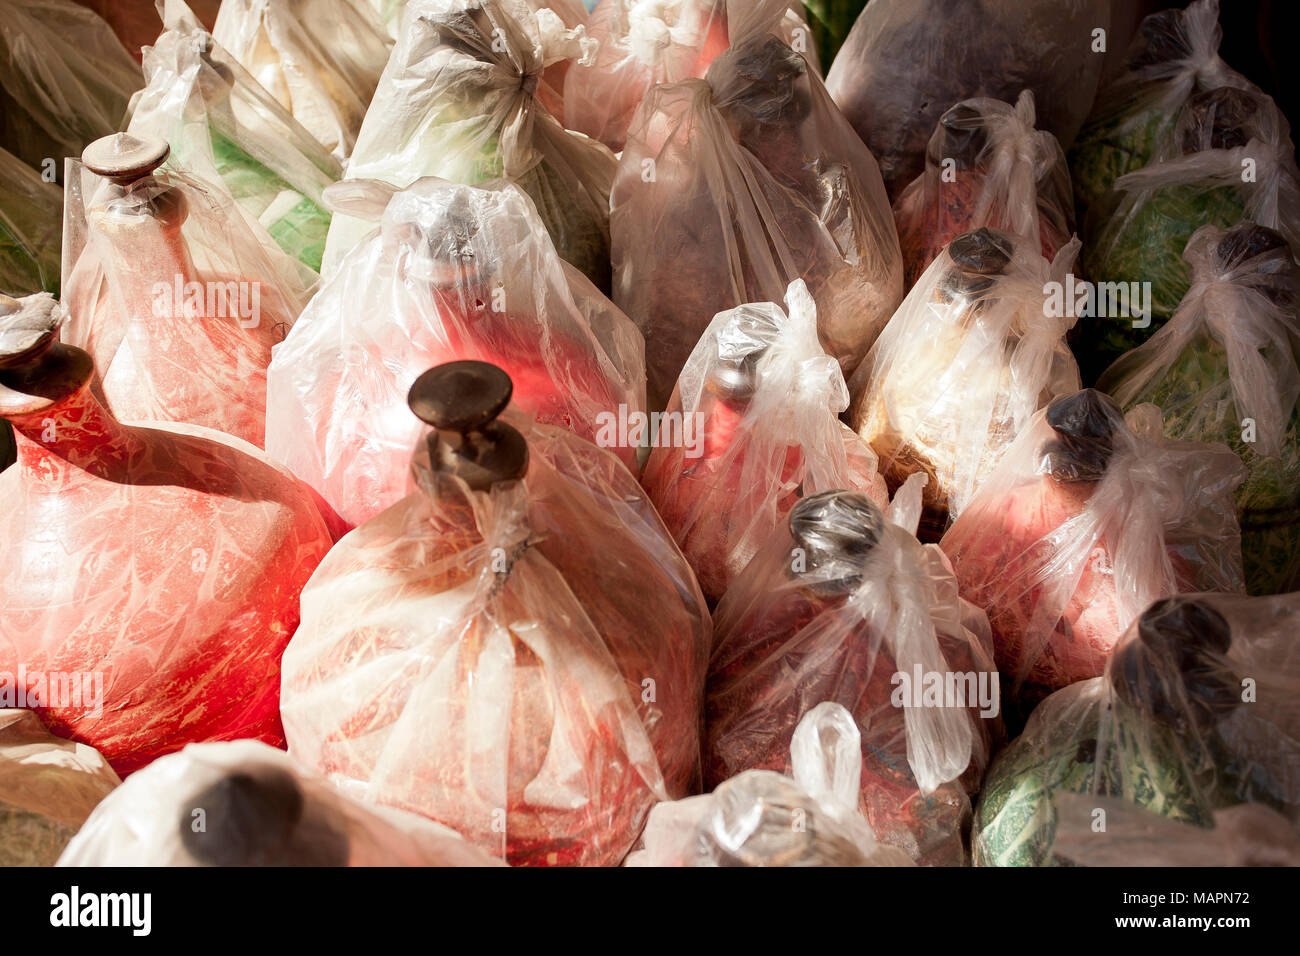 Un-necessary plastic wrapped around bottles in the souk in the centre of Nizwa, Oman - Stock Image